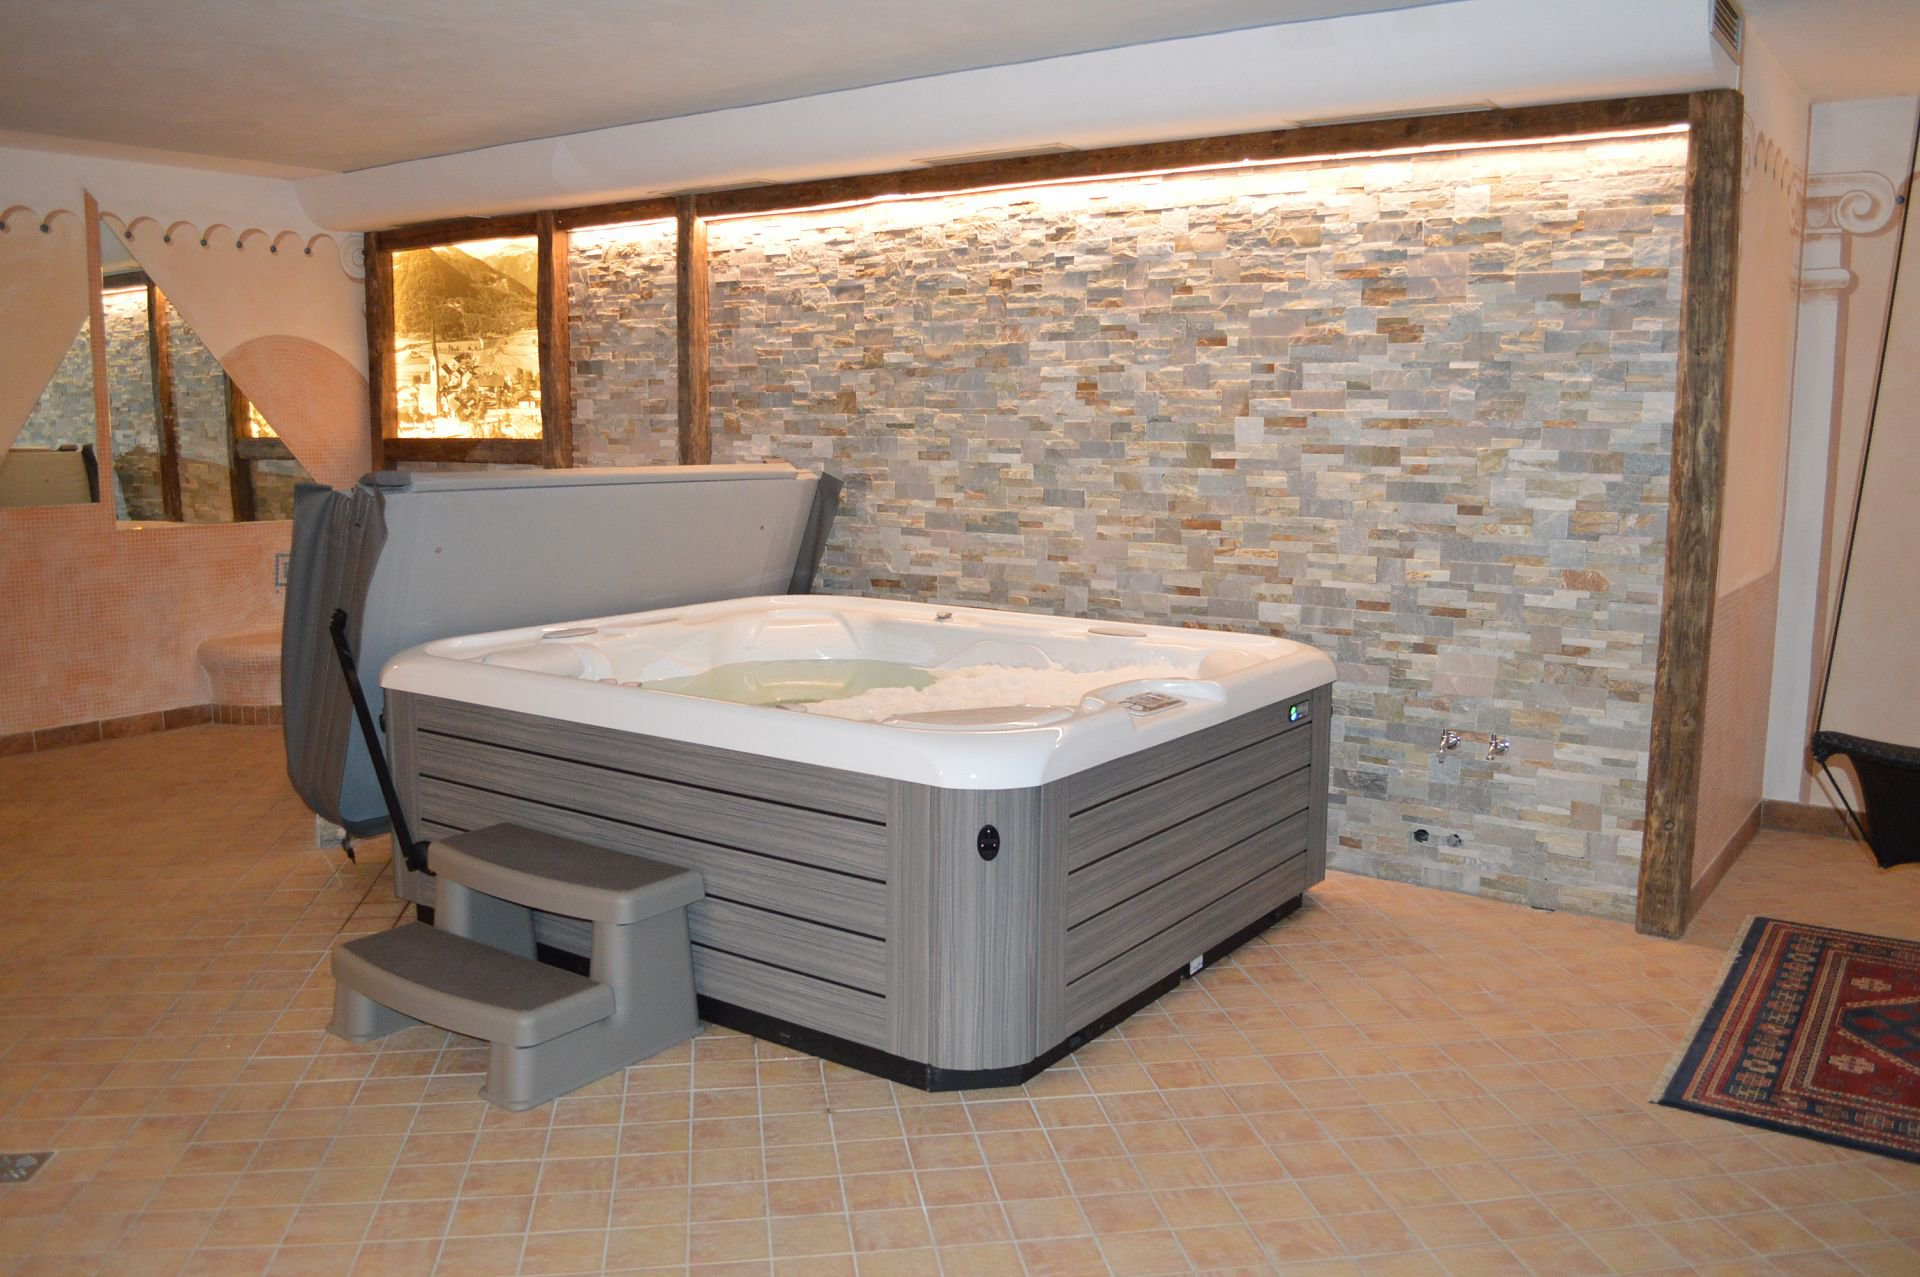 Your Wellness Hotel in Valle Isarco at the entrance to Val Pusteria: A huge relaxation oasis is waiting for you!